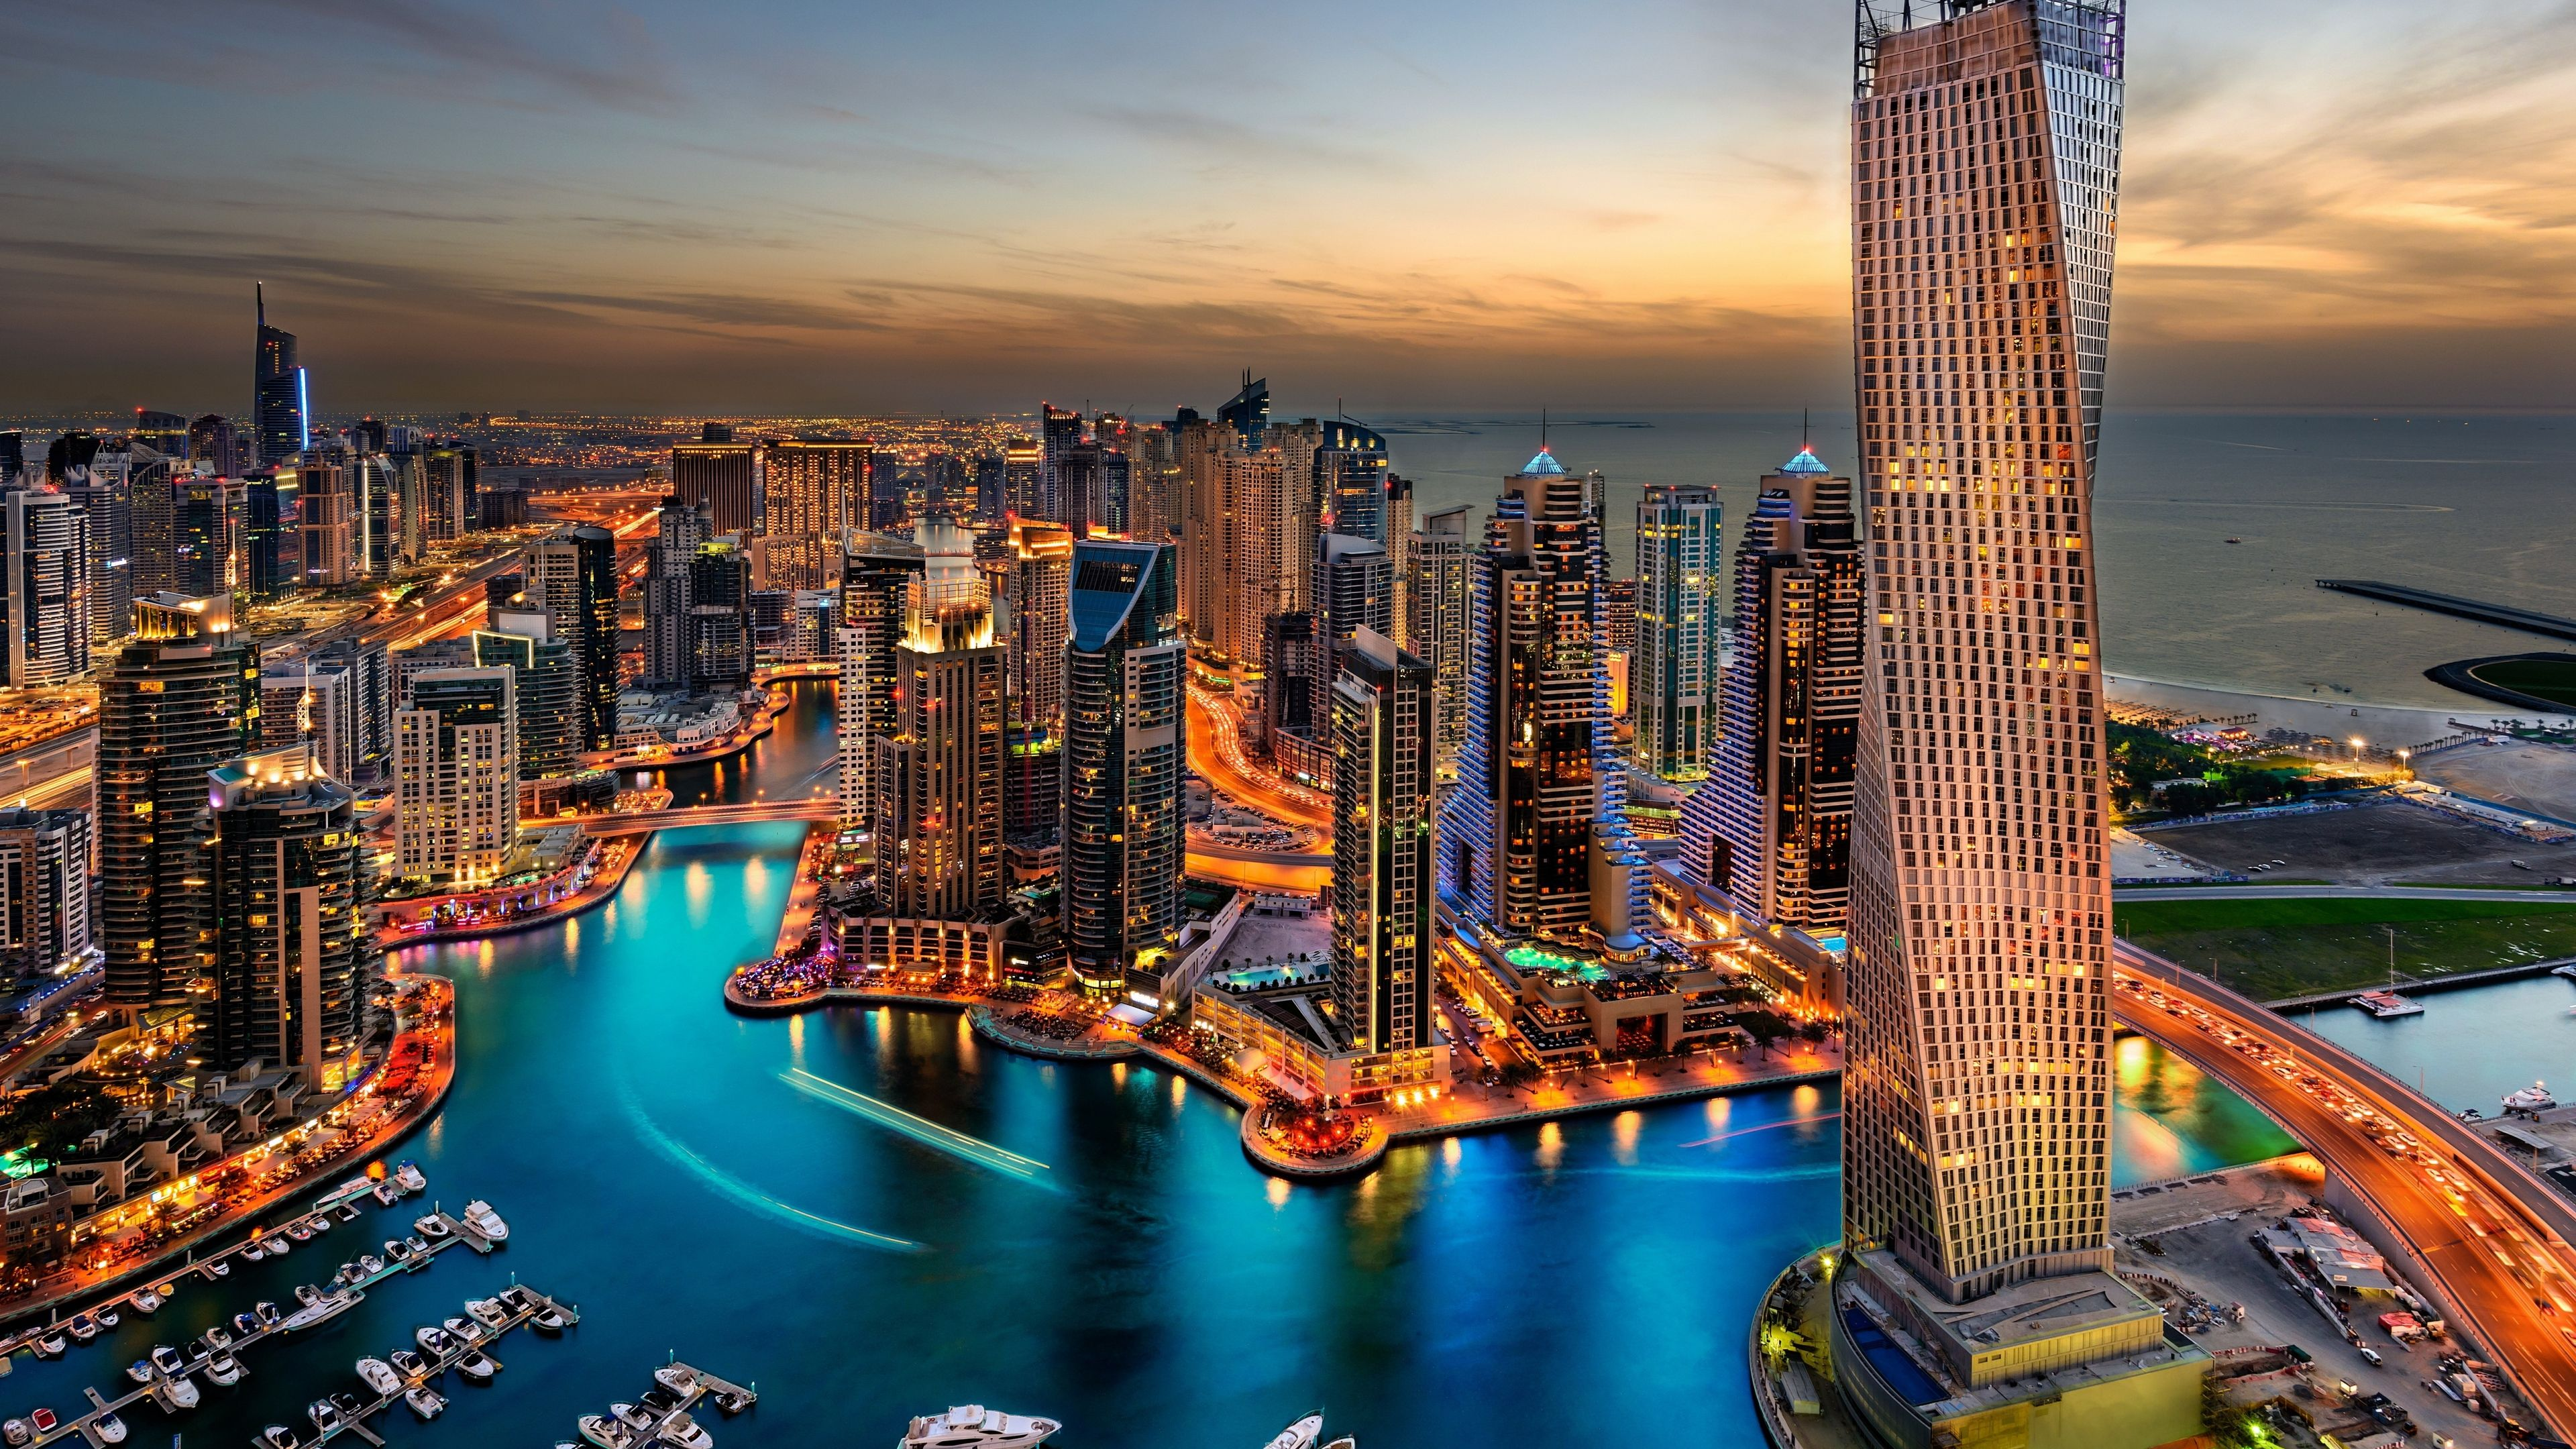 4k Ultra Hd Desktop Wallpapers Hd 3840x2160 Free Desktop Dubai Vacation Dubai City Dubai Tour